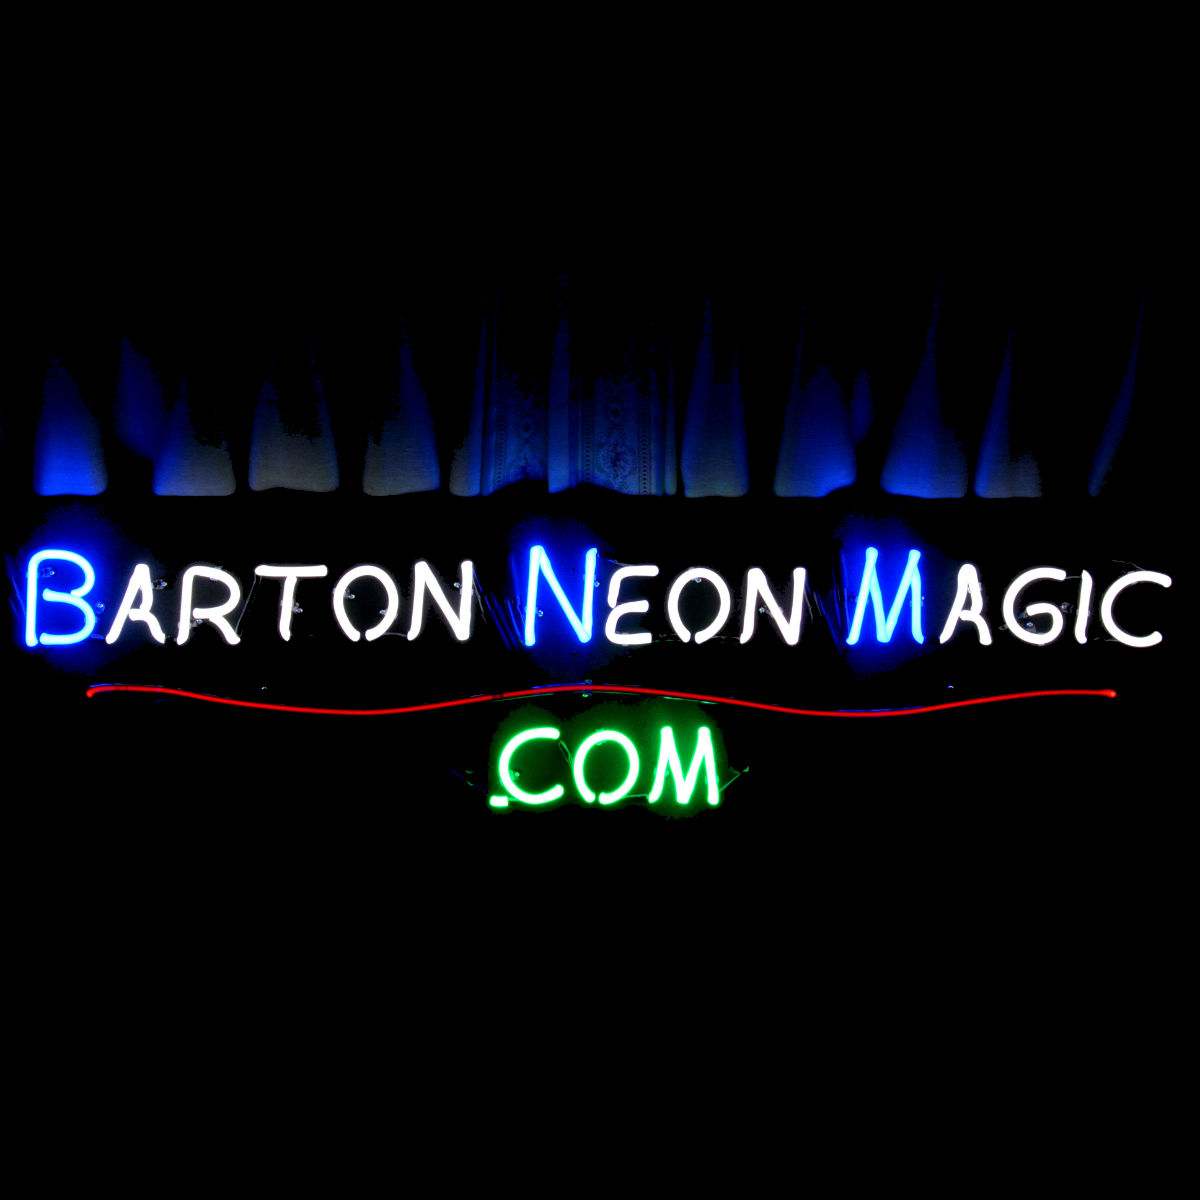 CUSTOM NEON LIGHT FIXTURES, NEON ART, AND NEON CHANDELIERS by John Barton - BartonNeonMagic.com